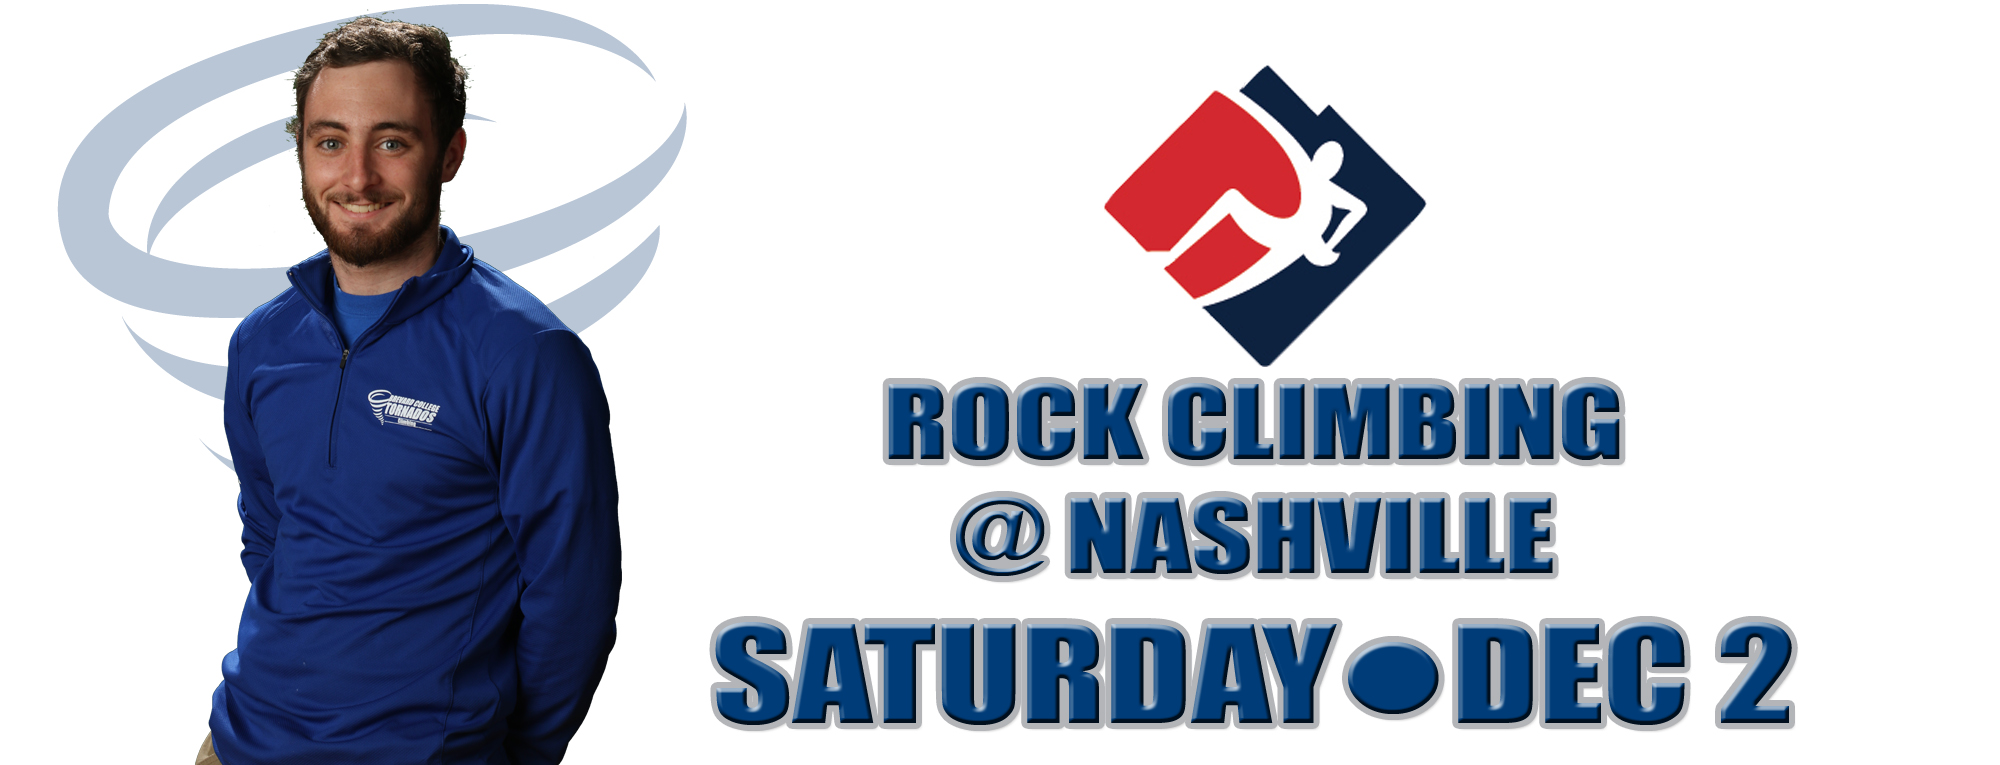 Brevard Rock Climbers set to compete in Nashville